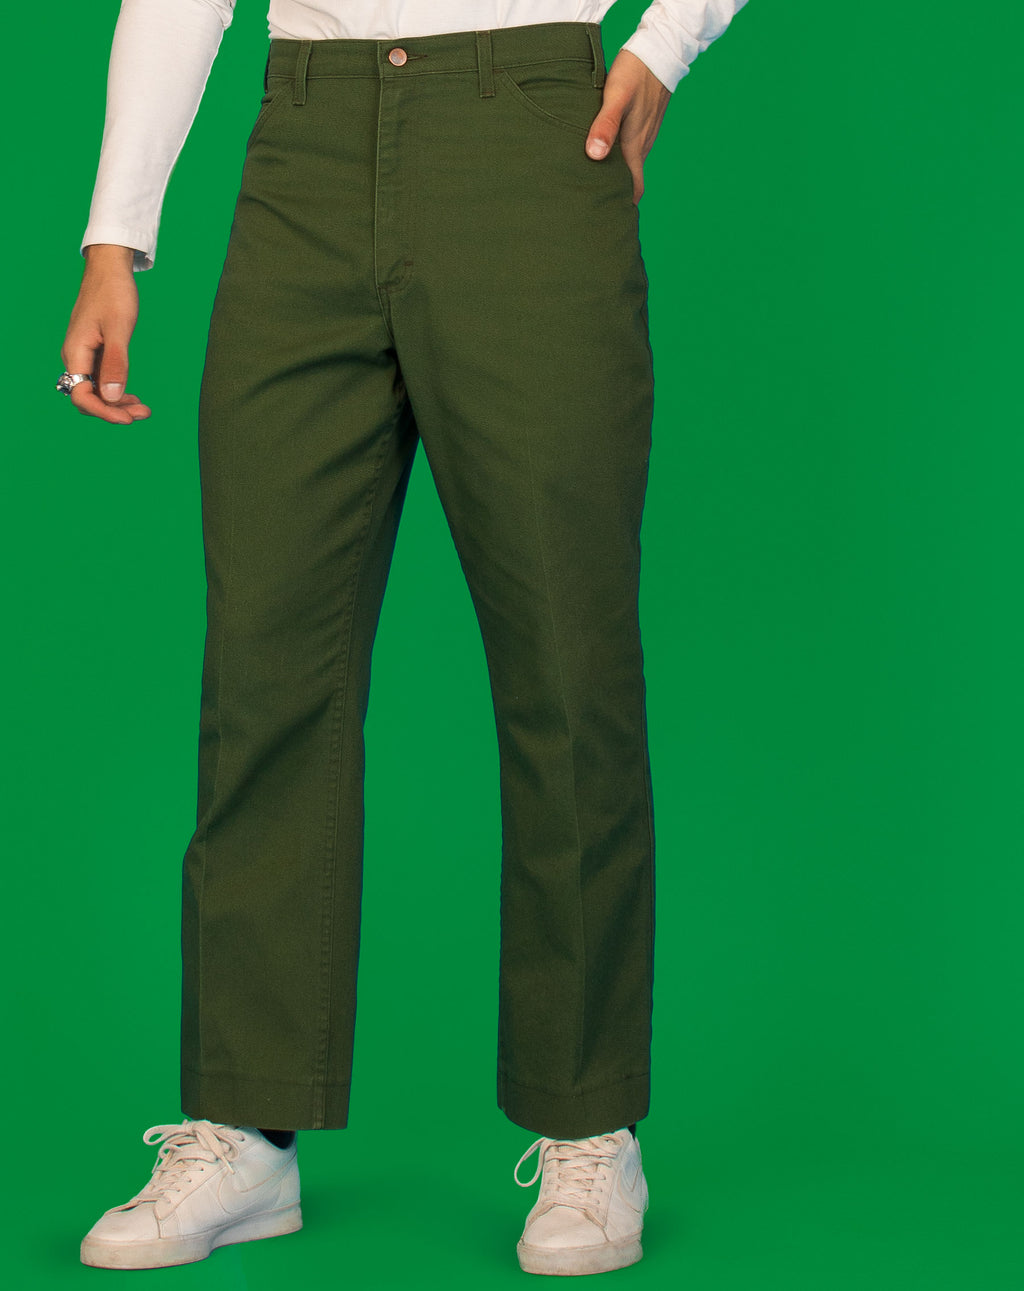 GREEN LOOSE FIT JEANS